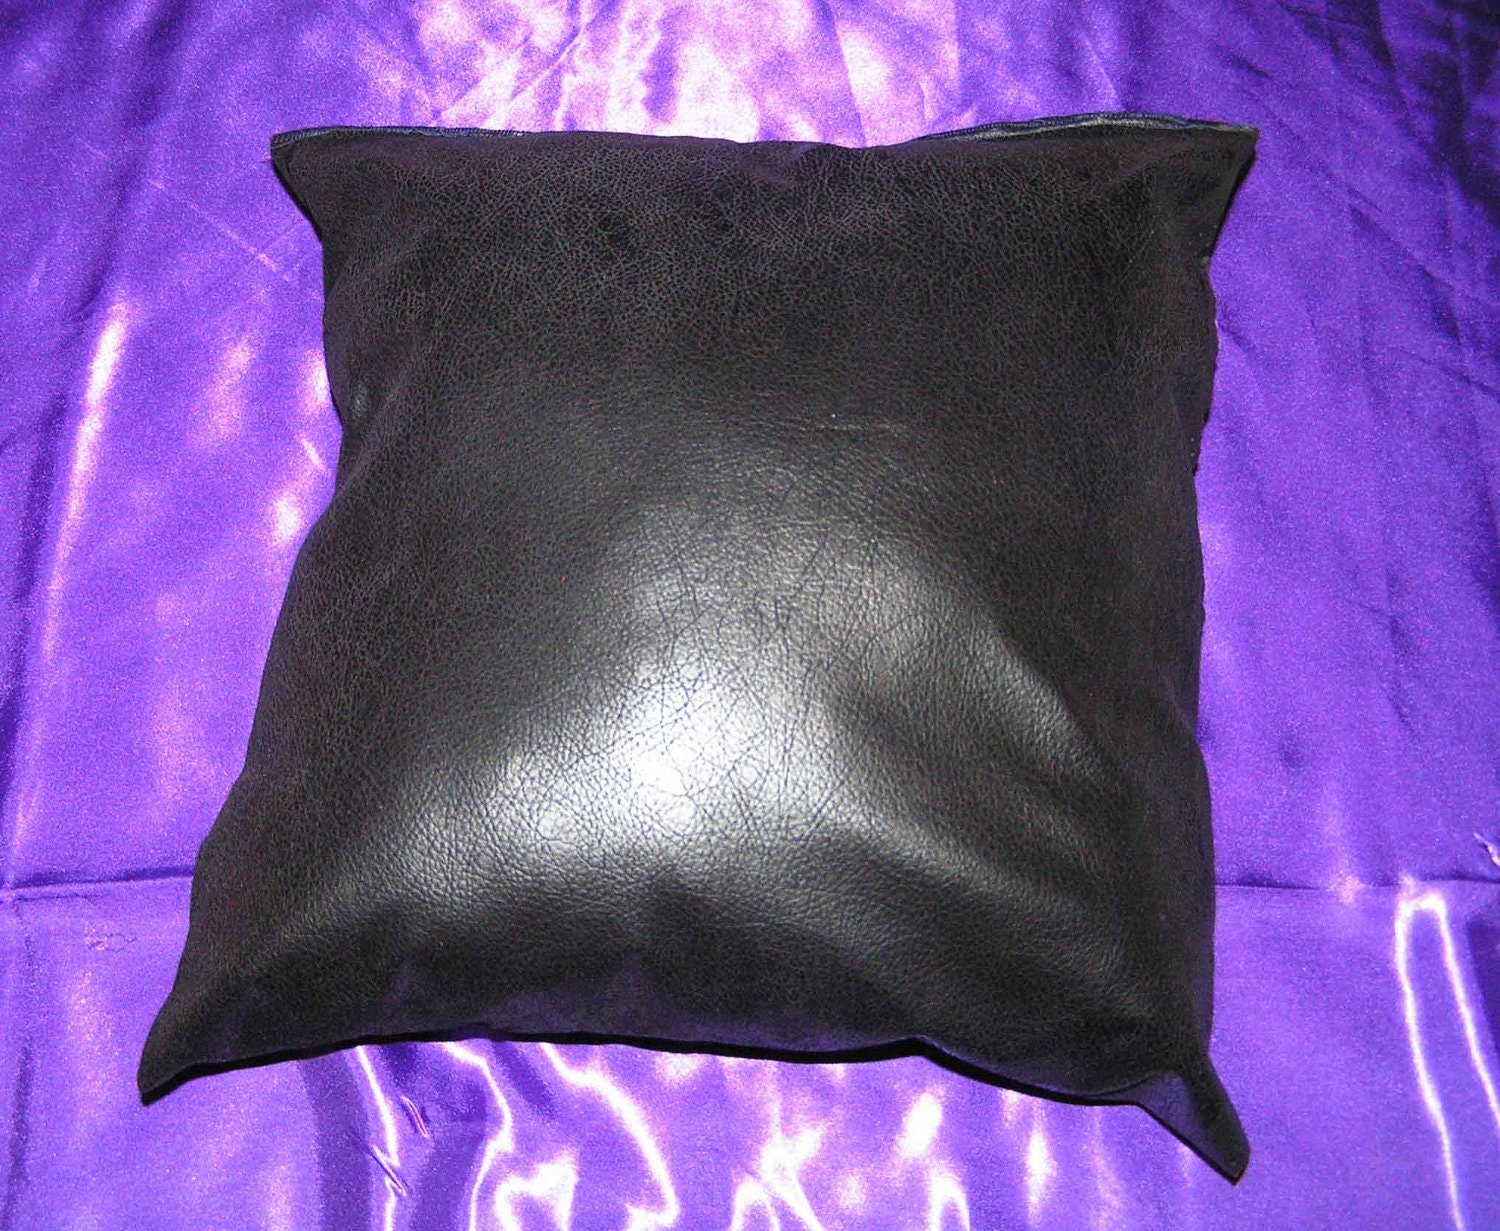 Decorative Pillow Covers With Zippers : 2 faux leather 16 x 16 throw pillow cover zipper closure